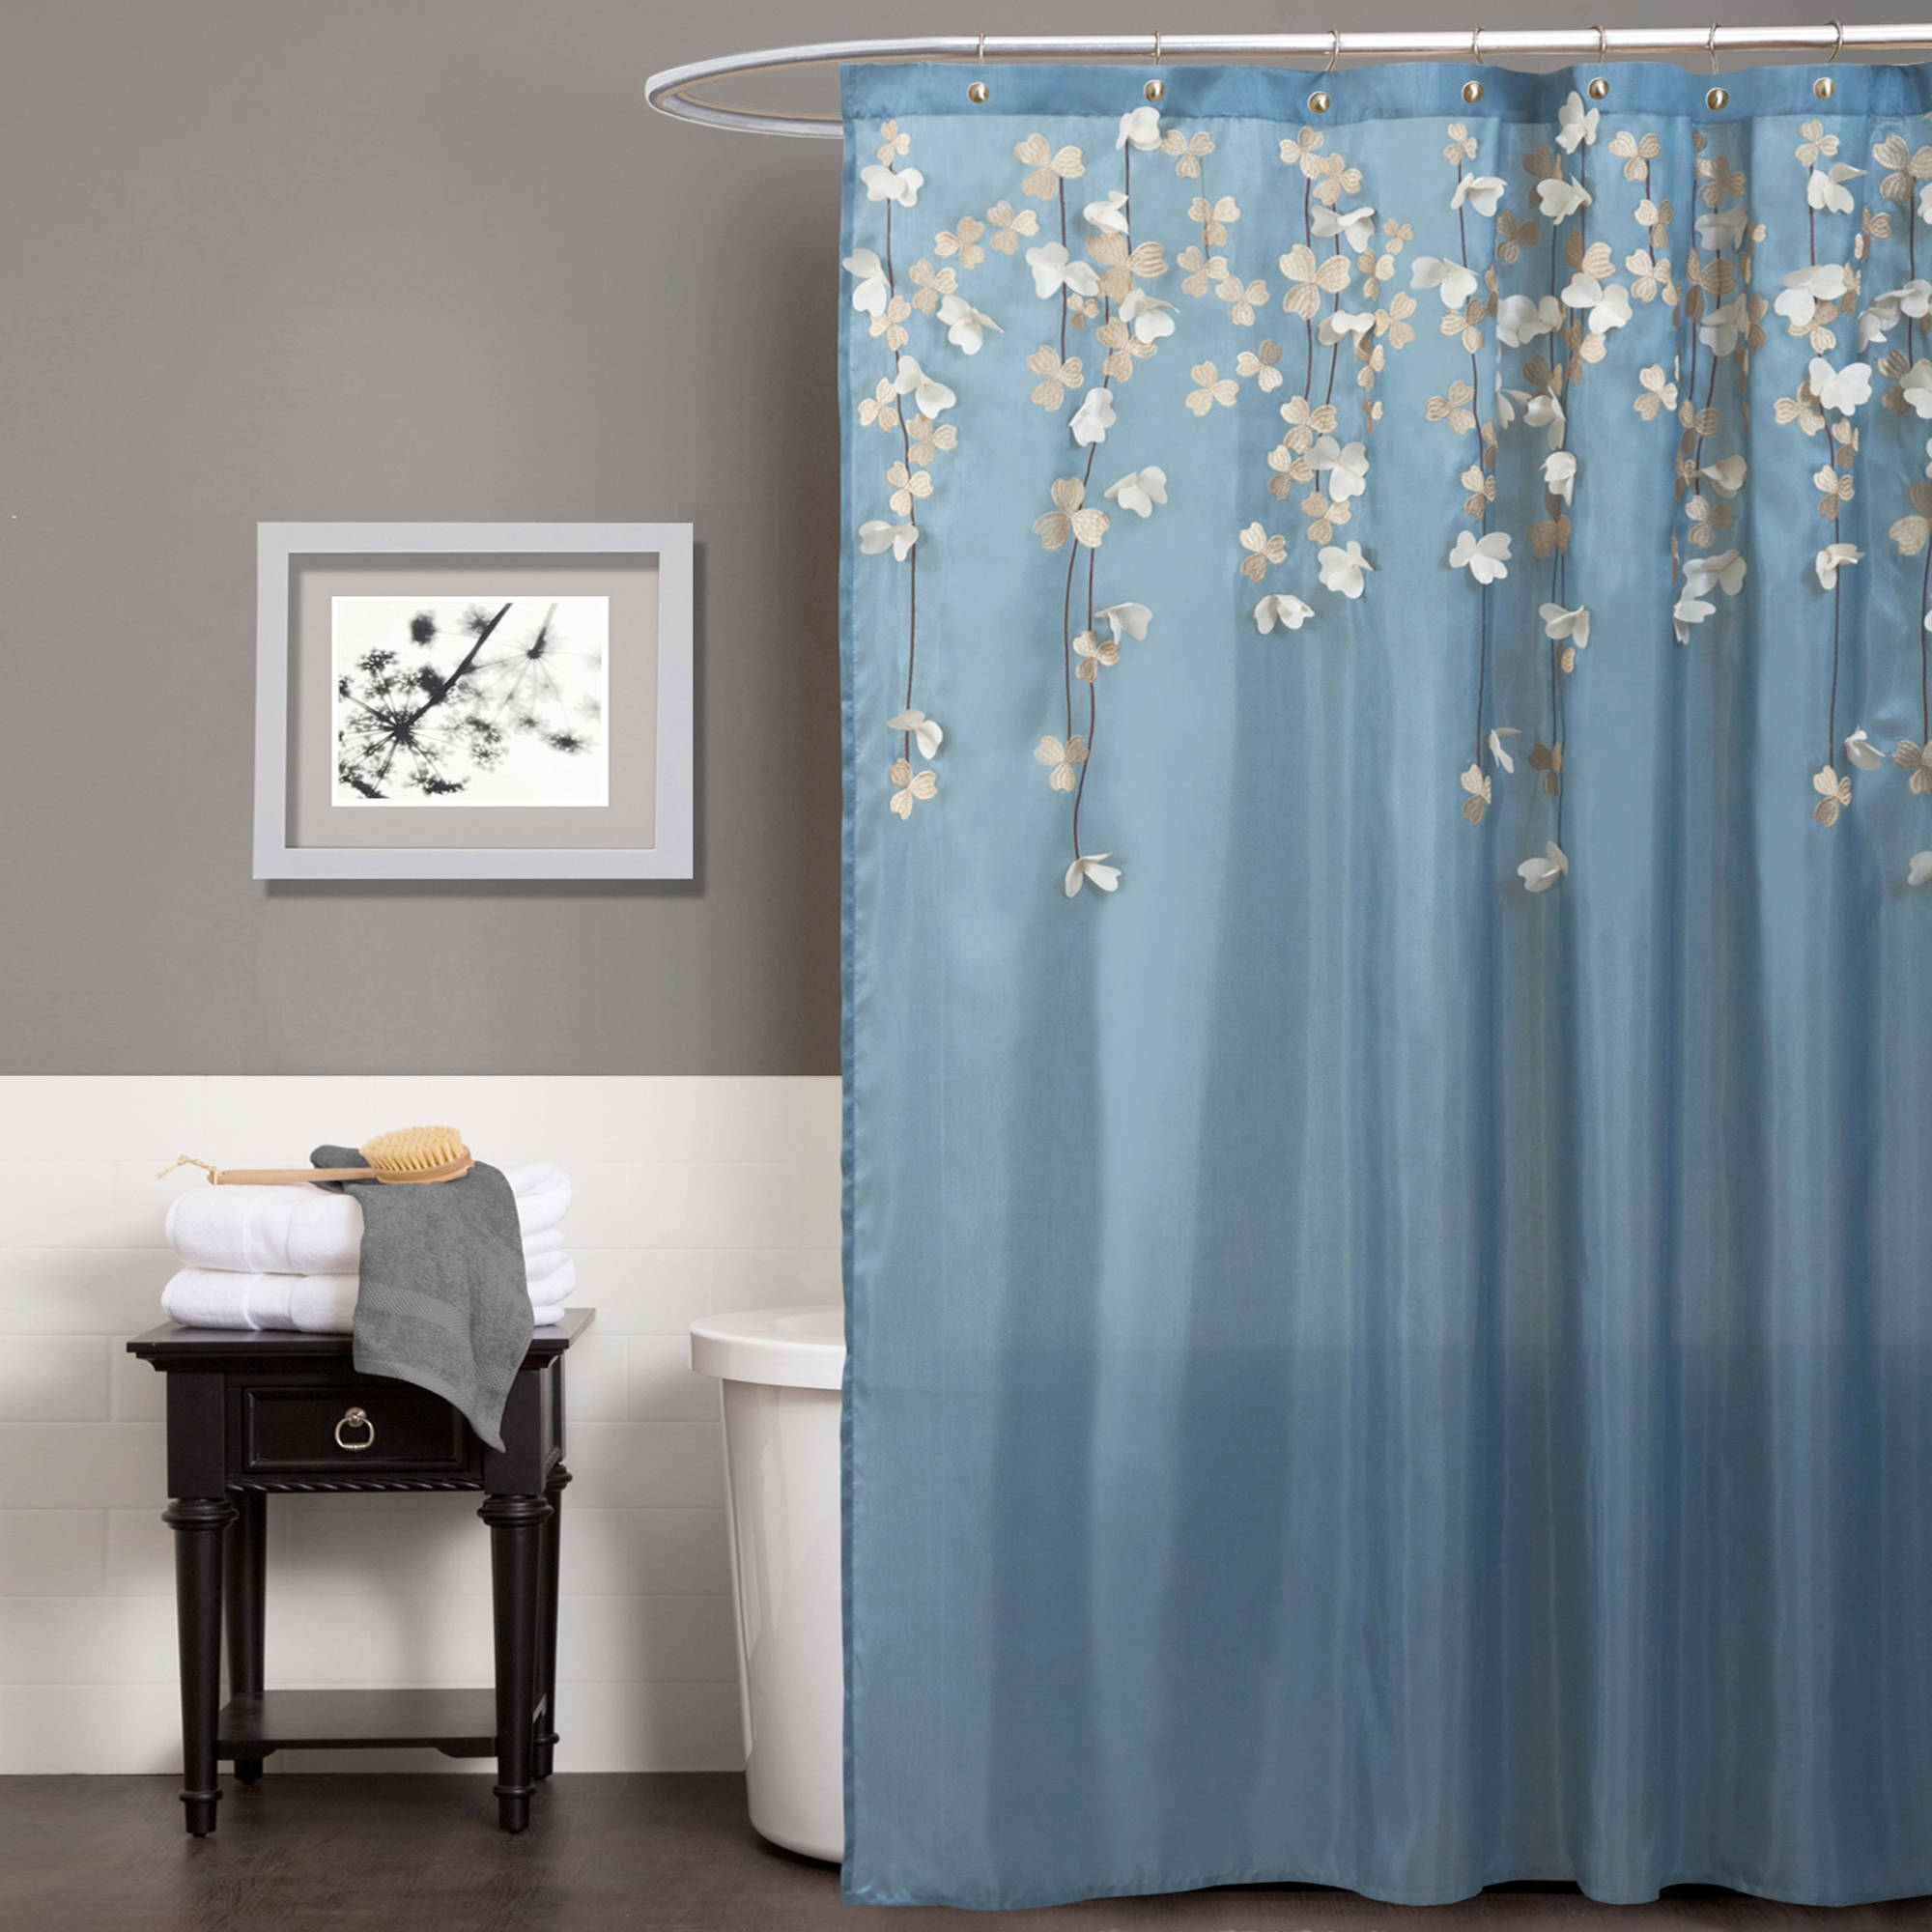 Shower Curtains With Fish On Them • Shower Curtains Ideas